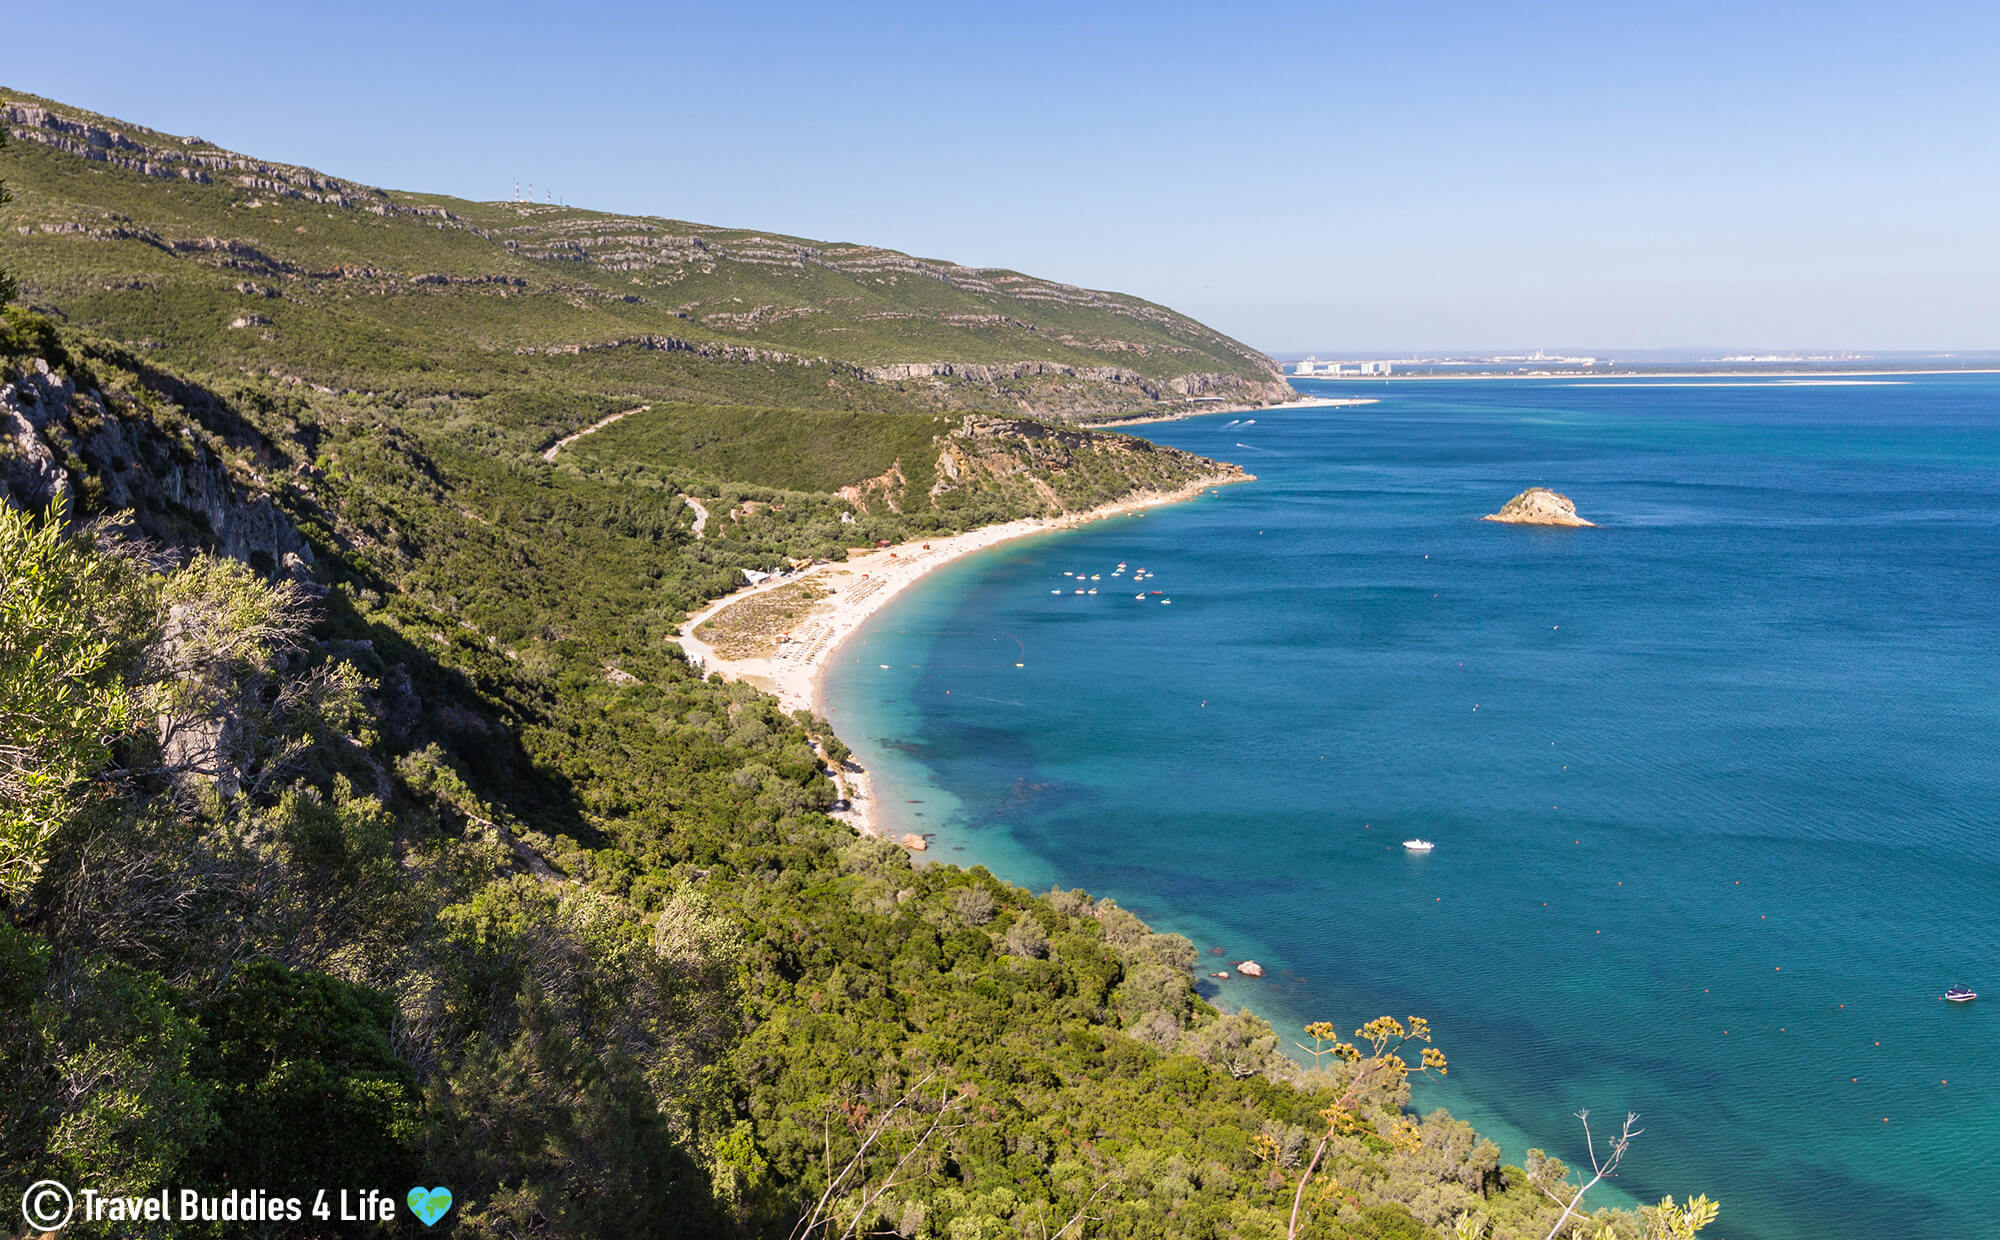 The Blue Water and Rugged Coast of Portugal's Arribadas Region